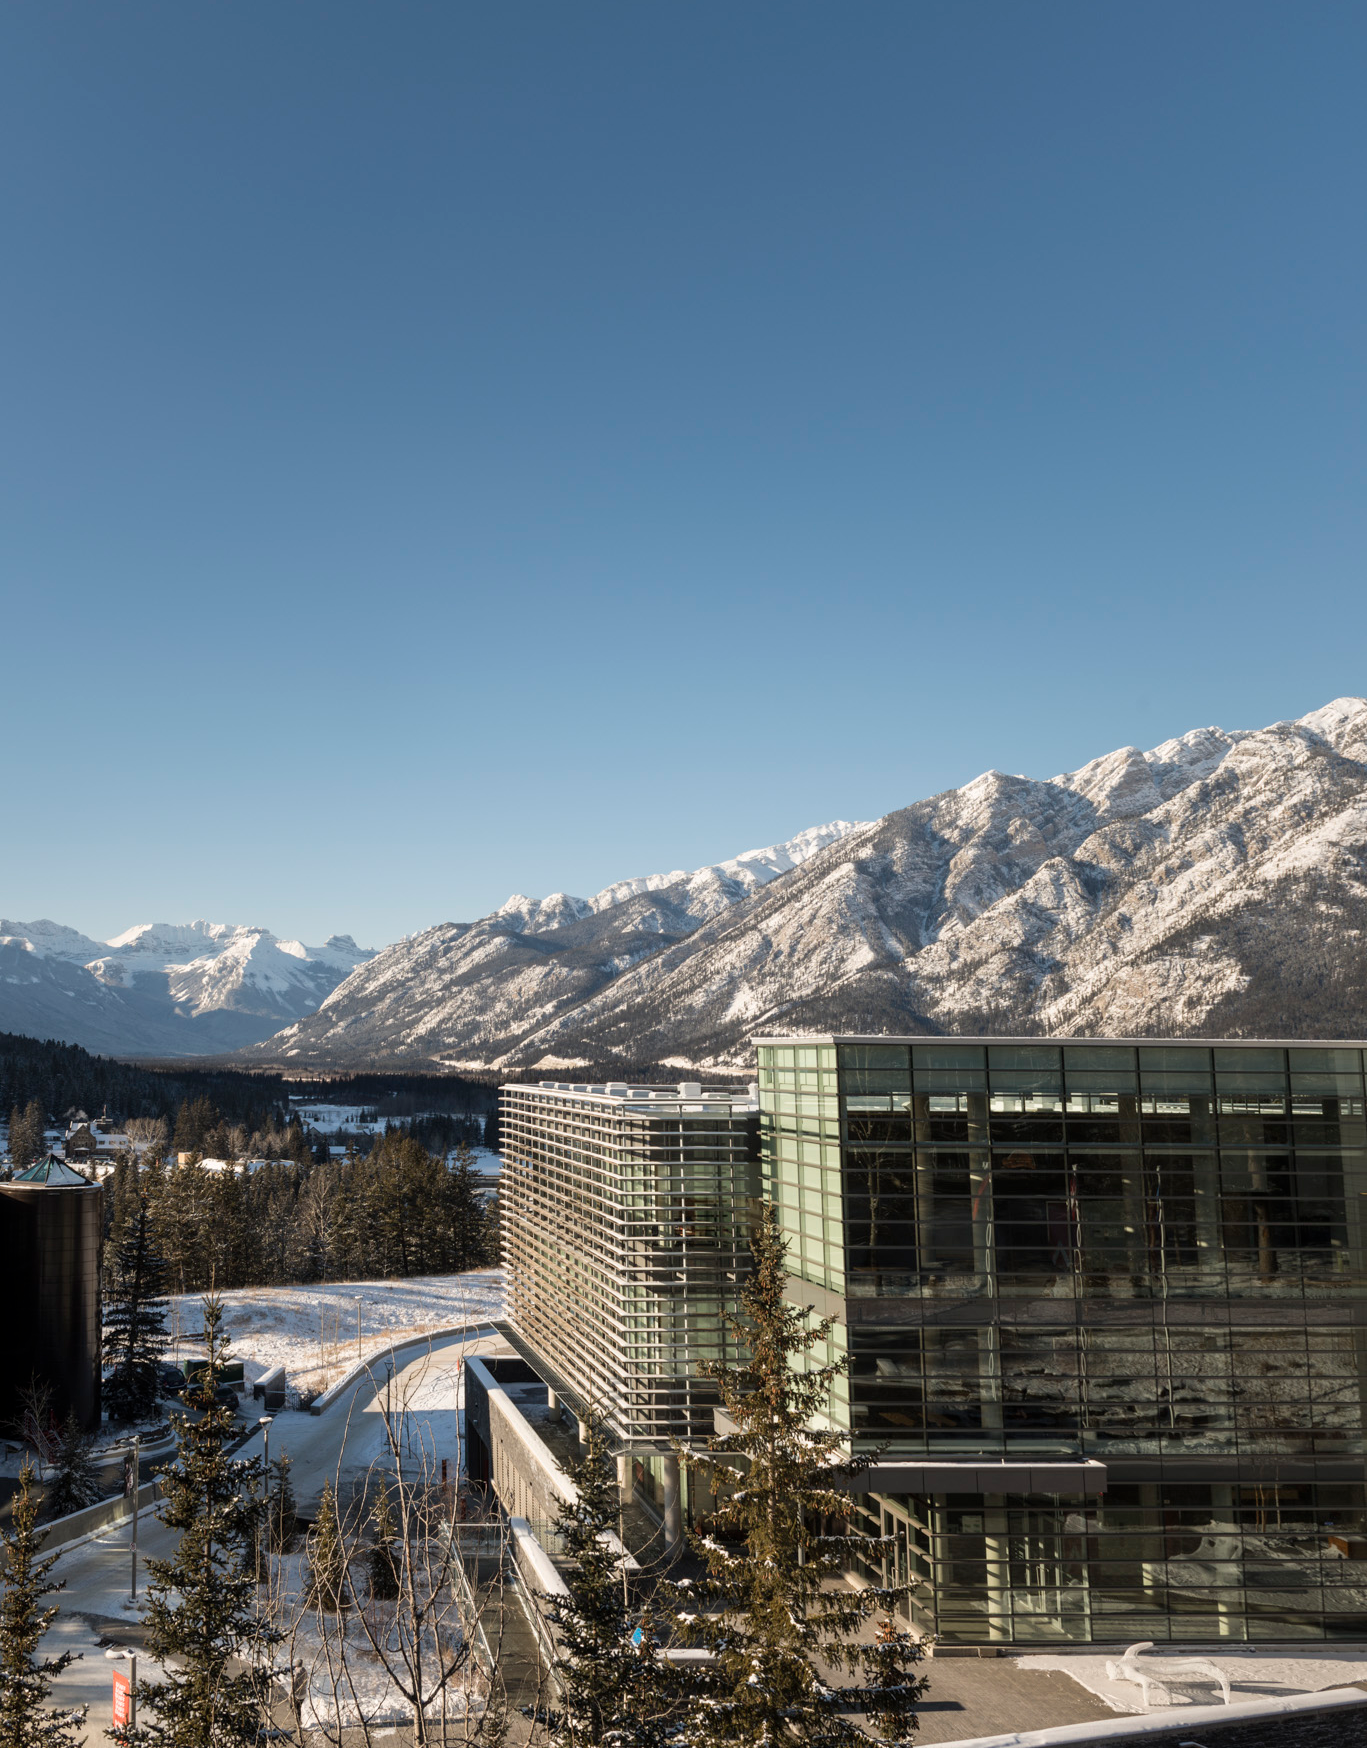 Location: Banff Centre for Arts